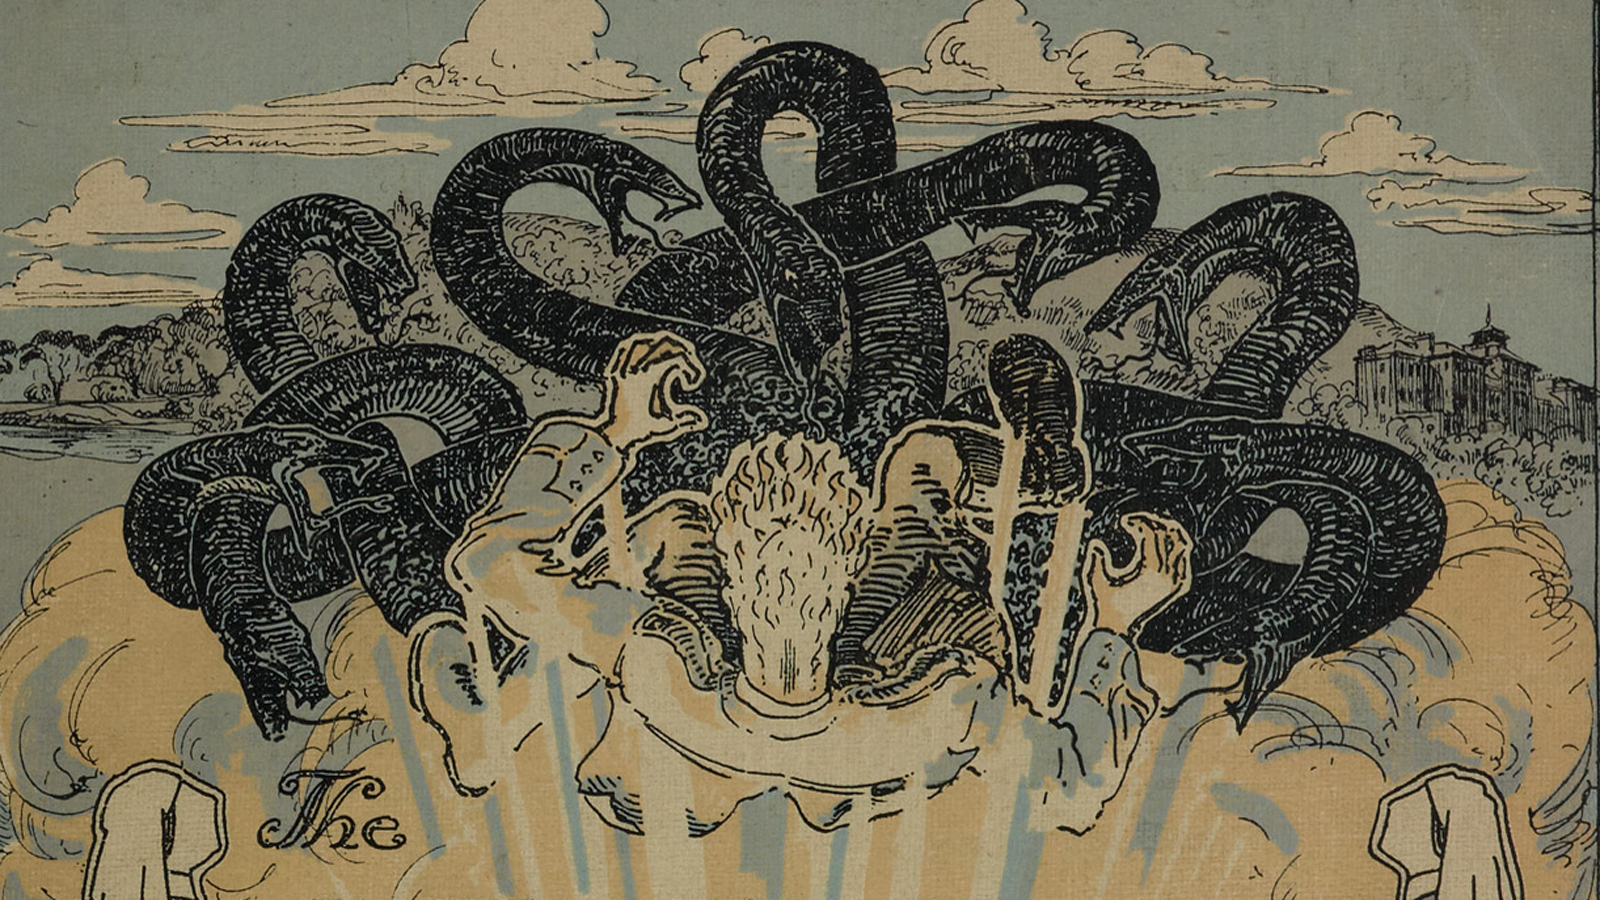 Banner for Shell shock article taken from The Hydra front cover. Shows an illustration of a soldier being attacked by a mythical beast (the hydra), alludes to psychological damage.